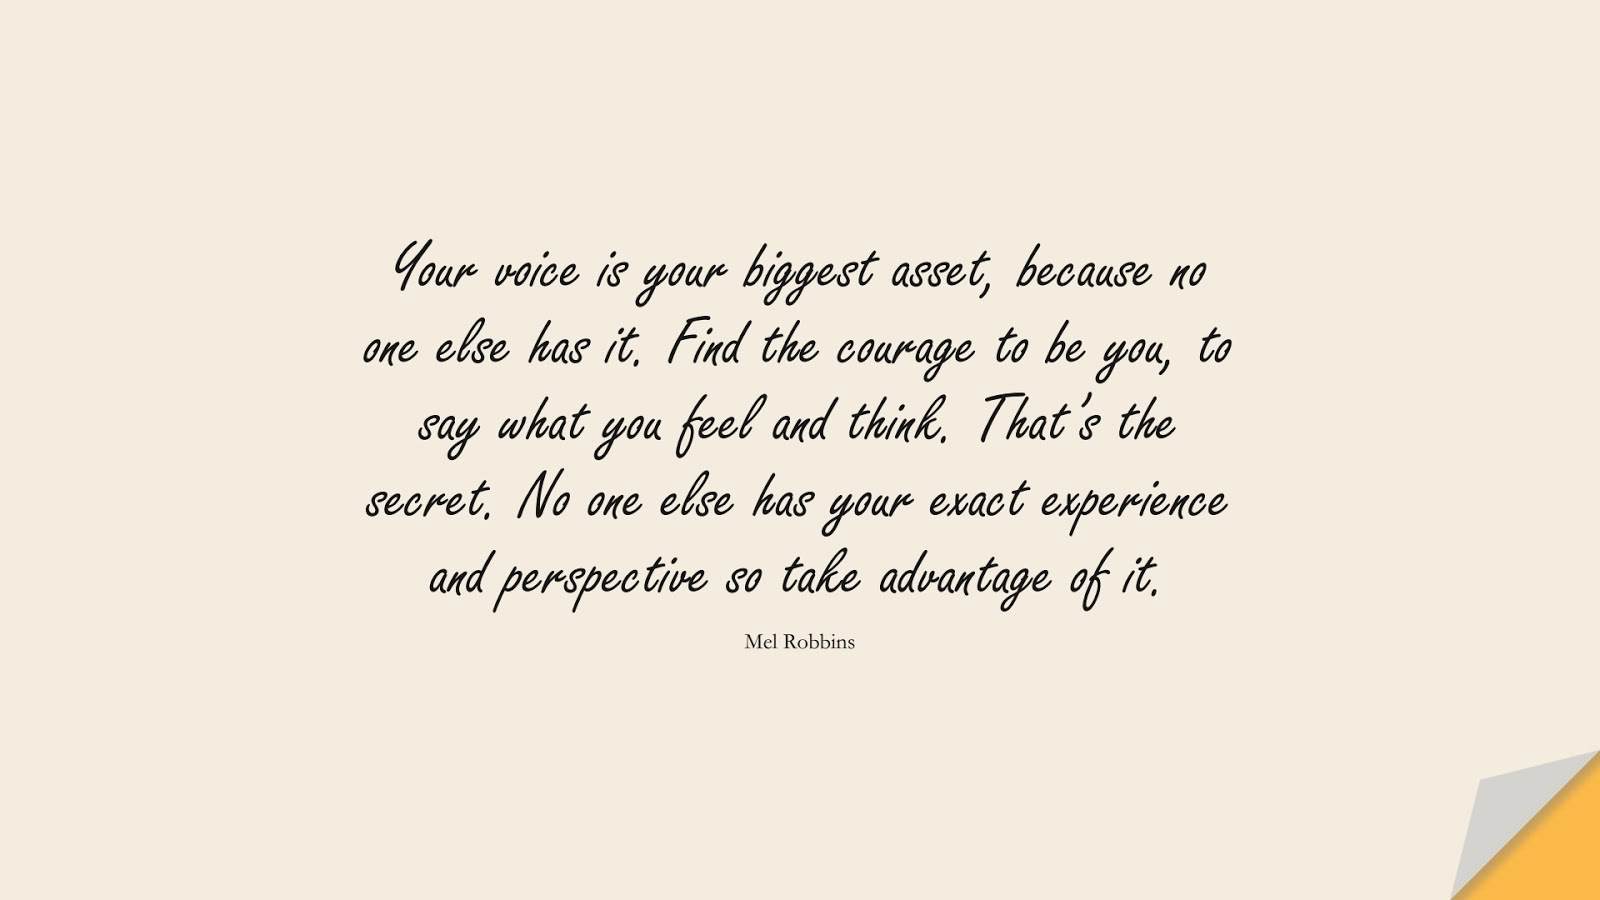 Your voice is your biggest asset, because no one else has it. Find the courage to be you, to say what you feel and think. That's the secret. No one else has your exact experience and perspective so take advantage of it. (Mel Robbins);  #EncouragingQuotes